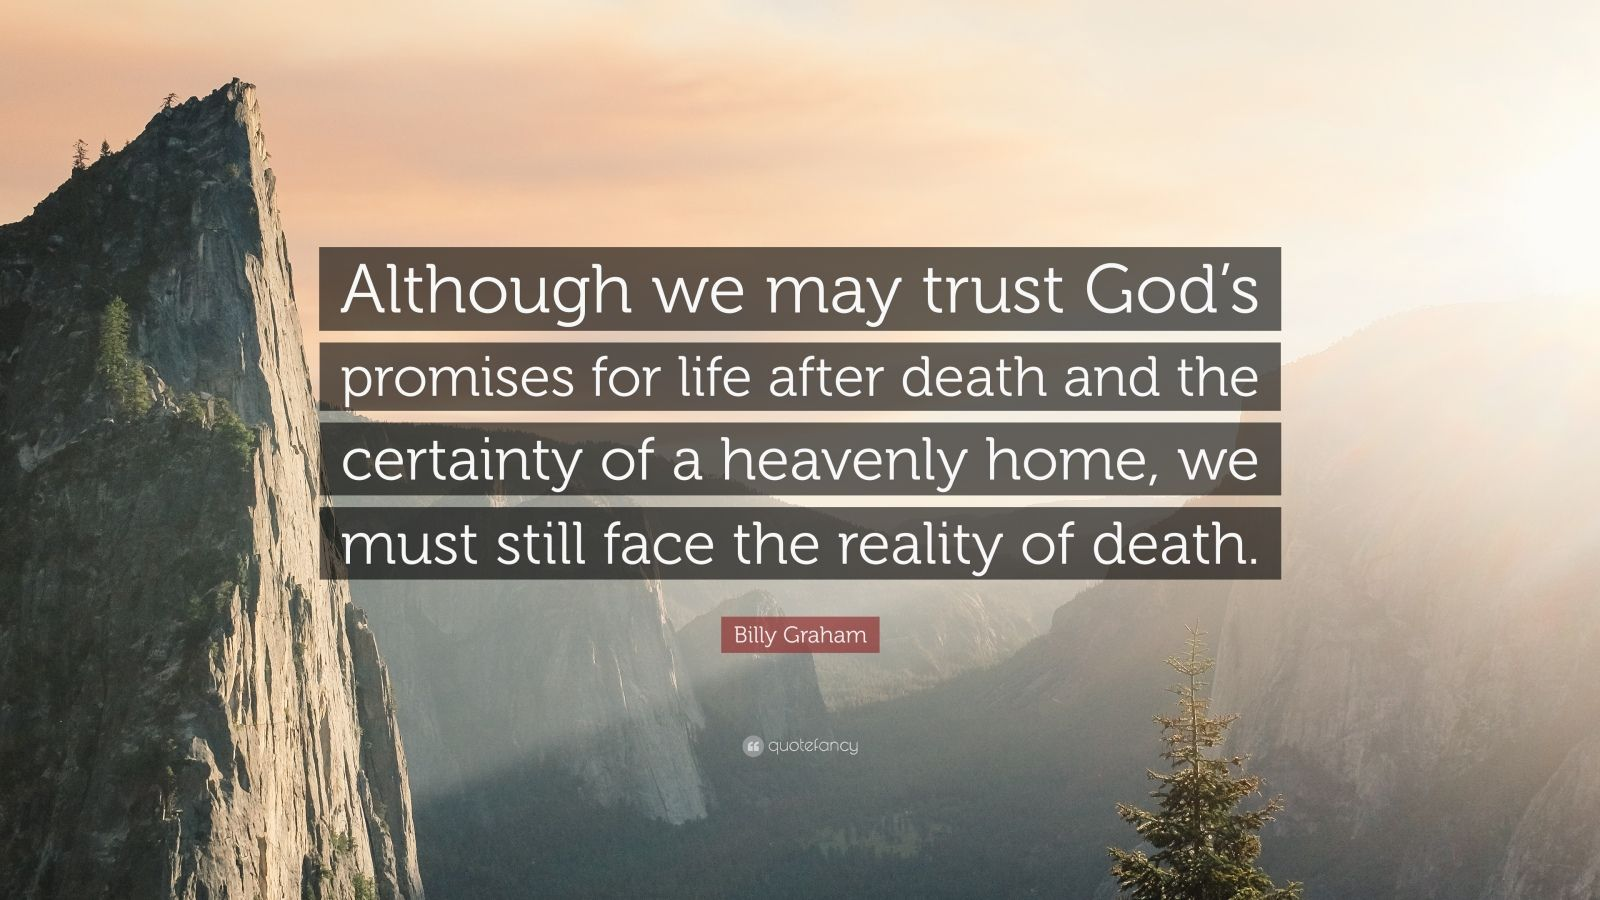 """Billy Graham Quote: """"Although we may trust God's promises for life after death and the certainty of a heavenly home, we must still face the reality of death."""""""